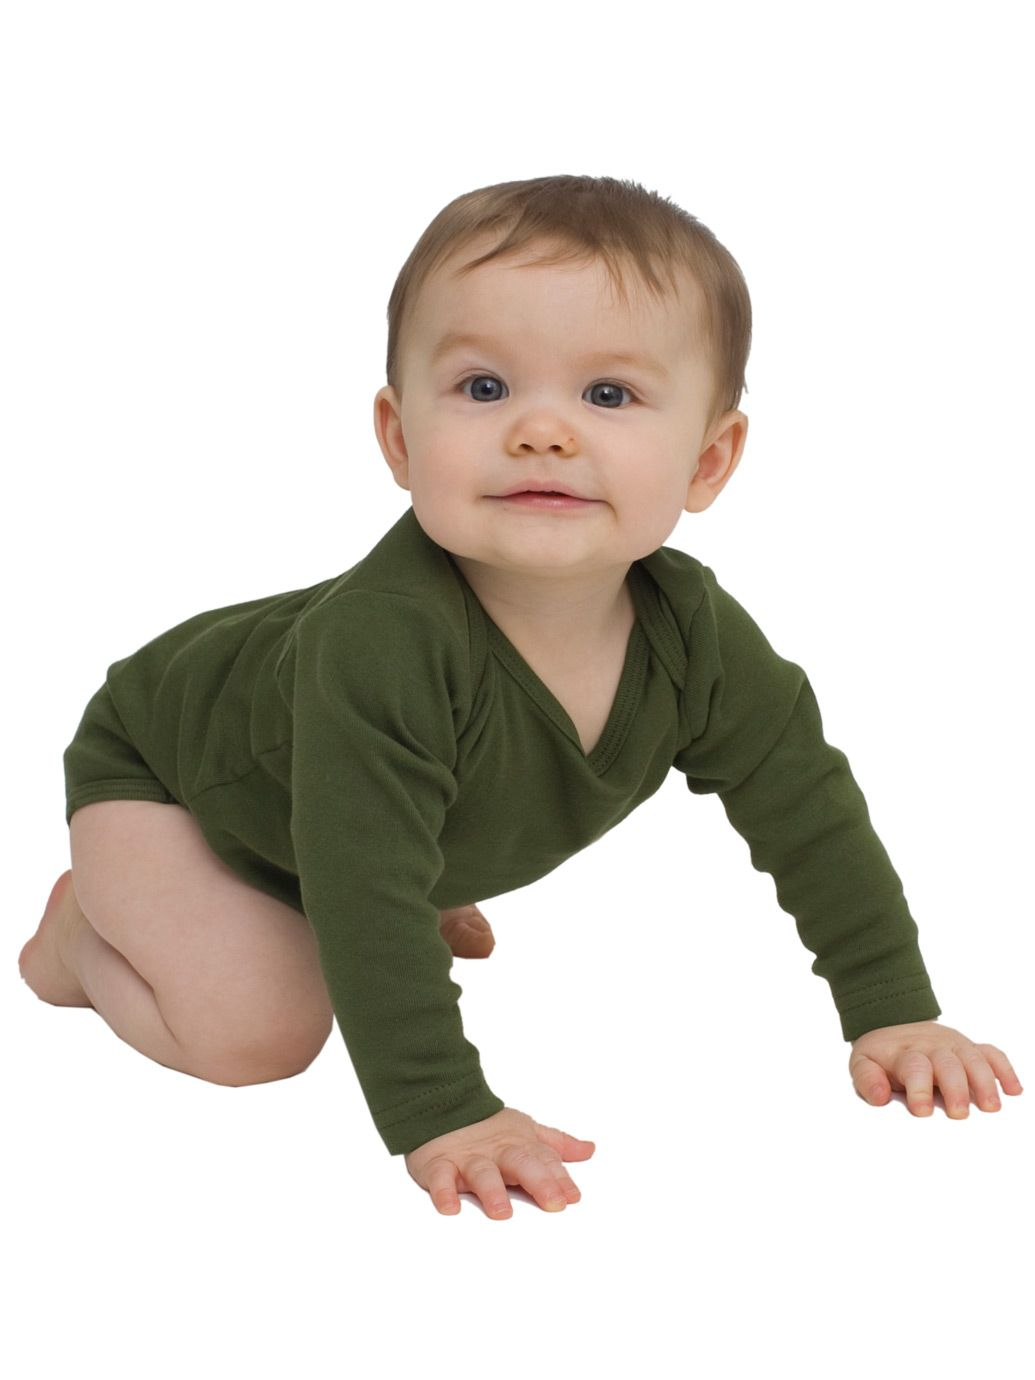 8a7895745553c American Apparel Infant Baby Rib Long Sleeve One-Piece - Evan ...